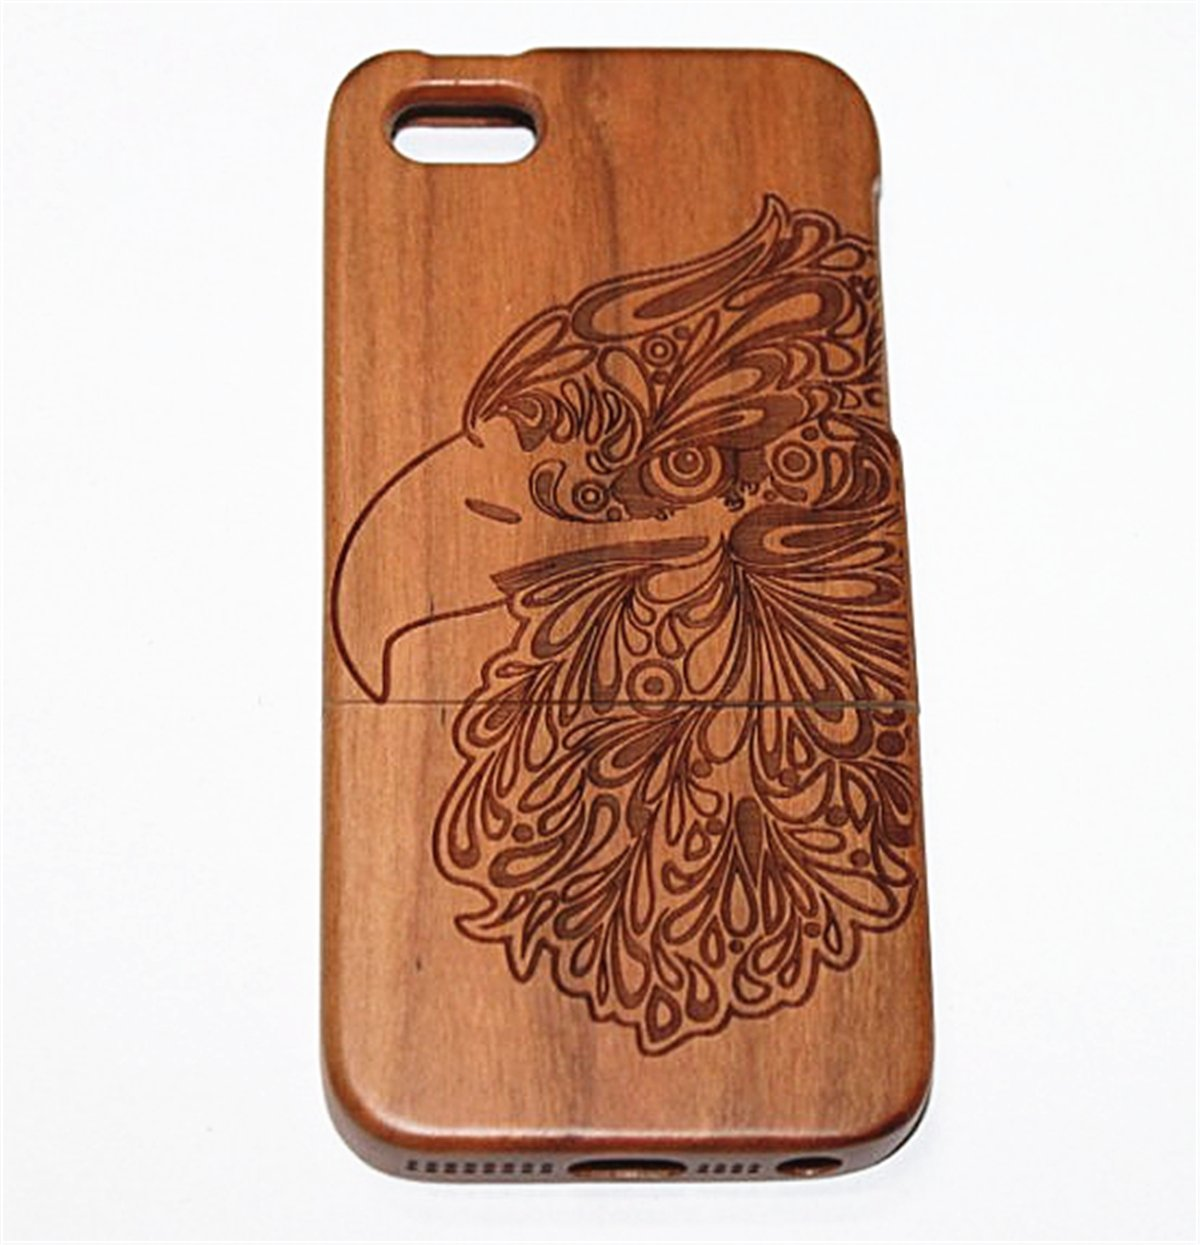 iPhone 6/6S Case, Firefish Unique Eco-Friendly 100% Real Natural Wood With Laser Engraved Pattern Drop & Shock Protective Super Hard Shell Case For iPhone 6/6S -Eagle